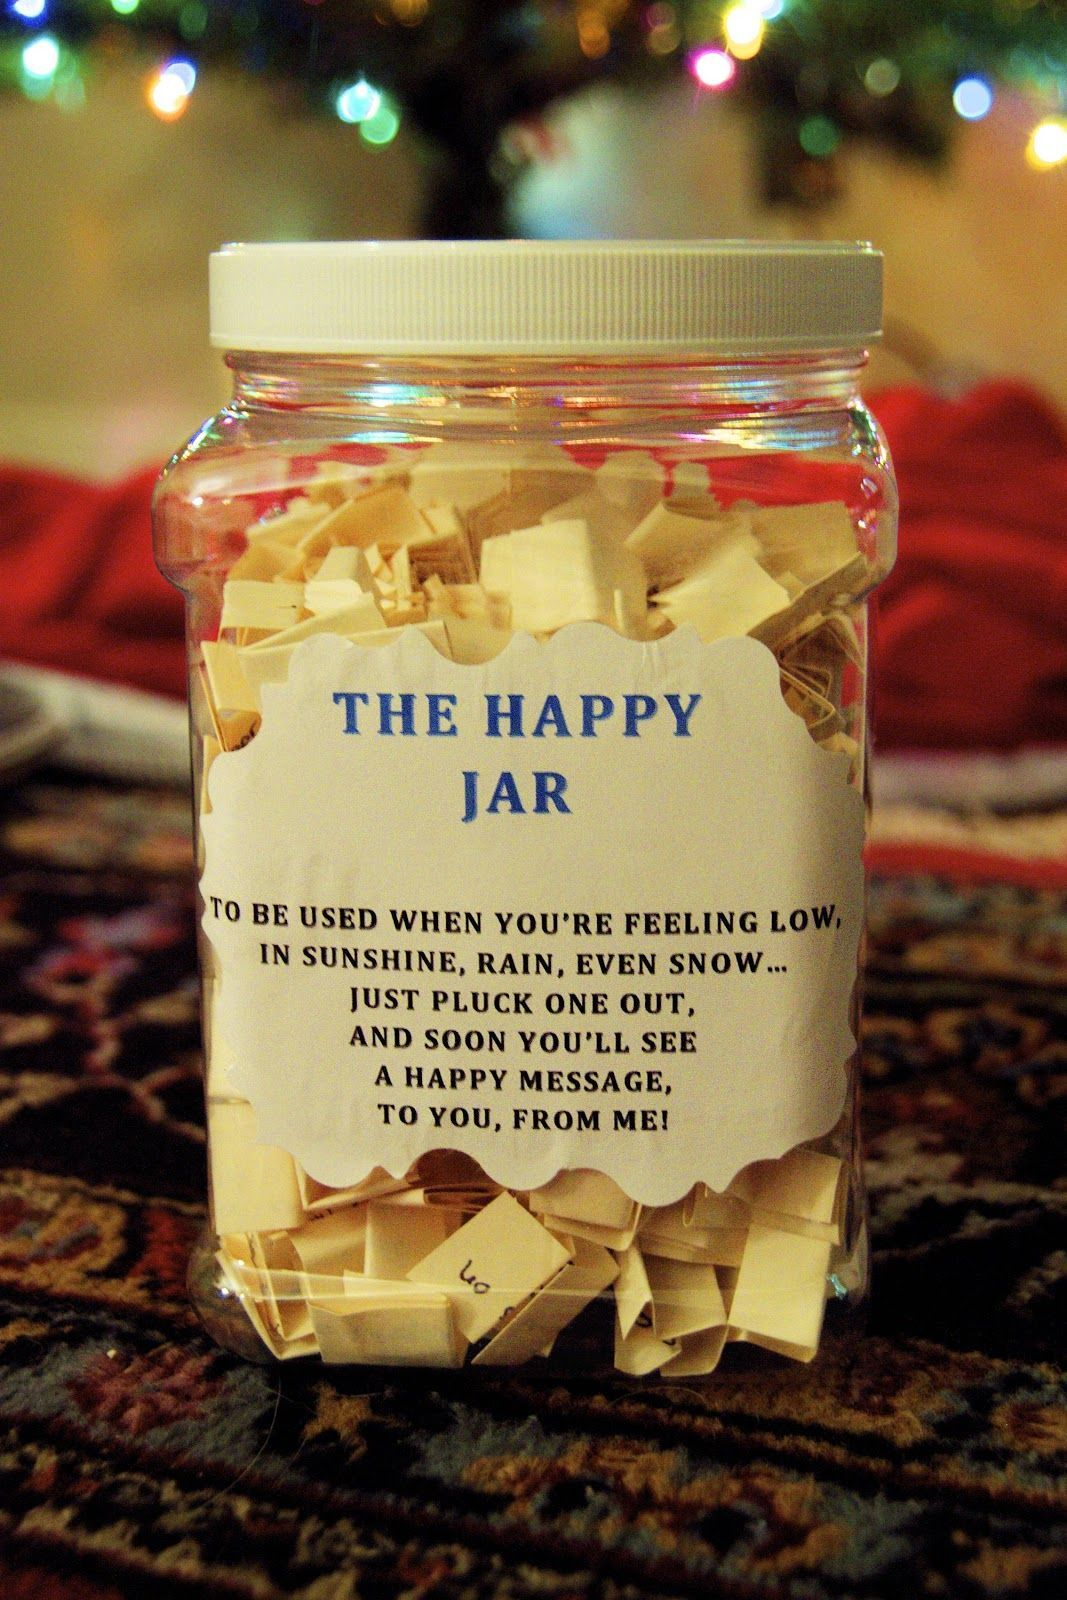 The Happy Jar A Homemade Jar Of Individual Sentiments On Paper Designed To Cheer Up A Faraway